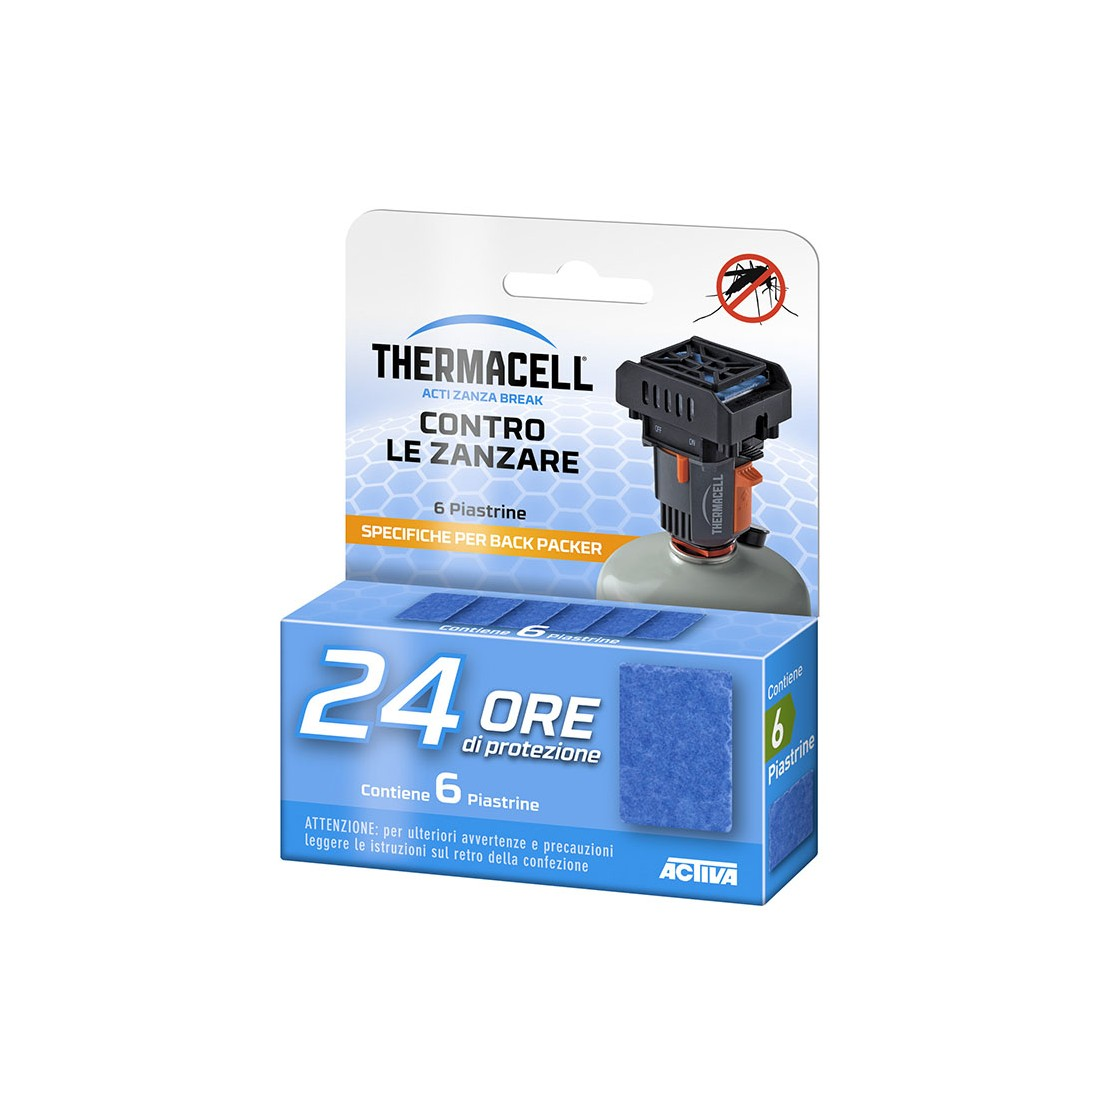 ThermaCELL Ricarica 24 Ore Piastrine Backpacker